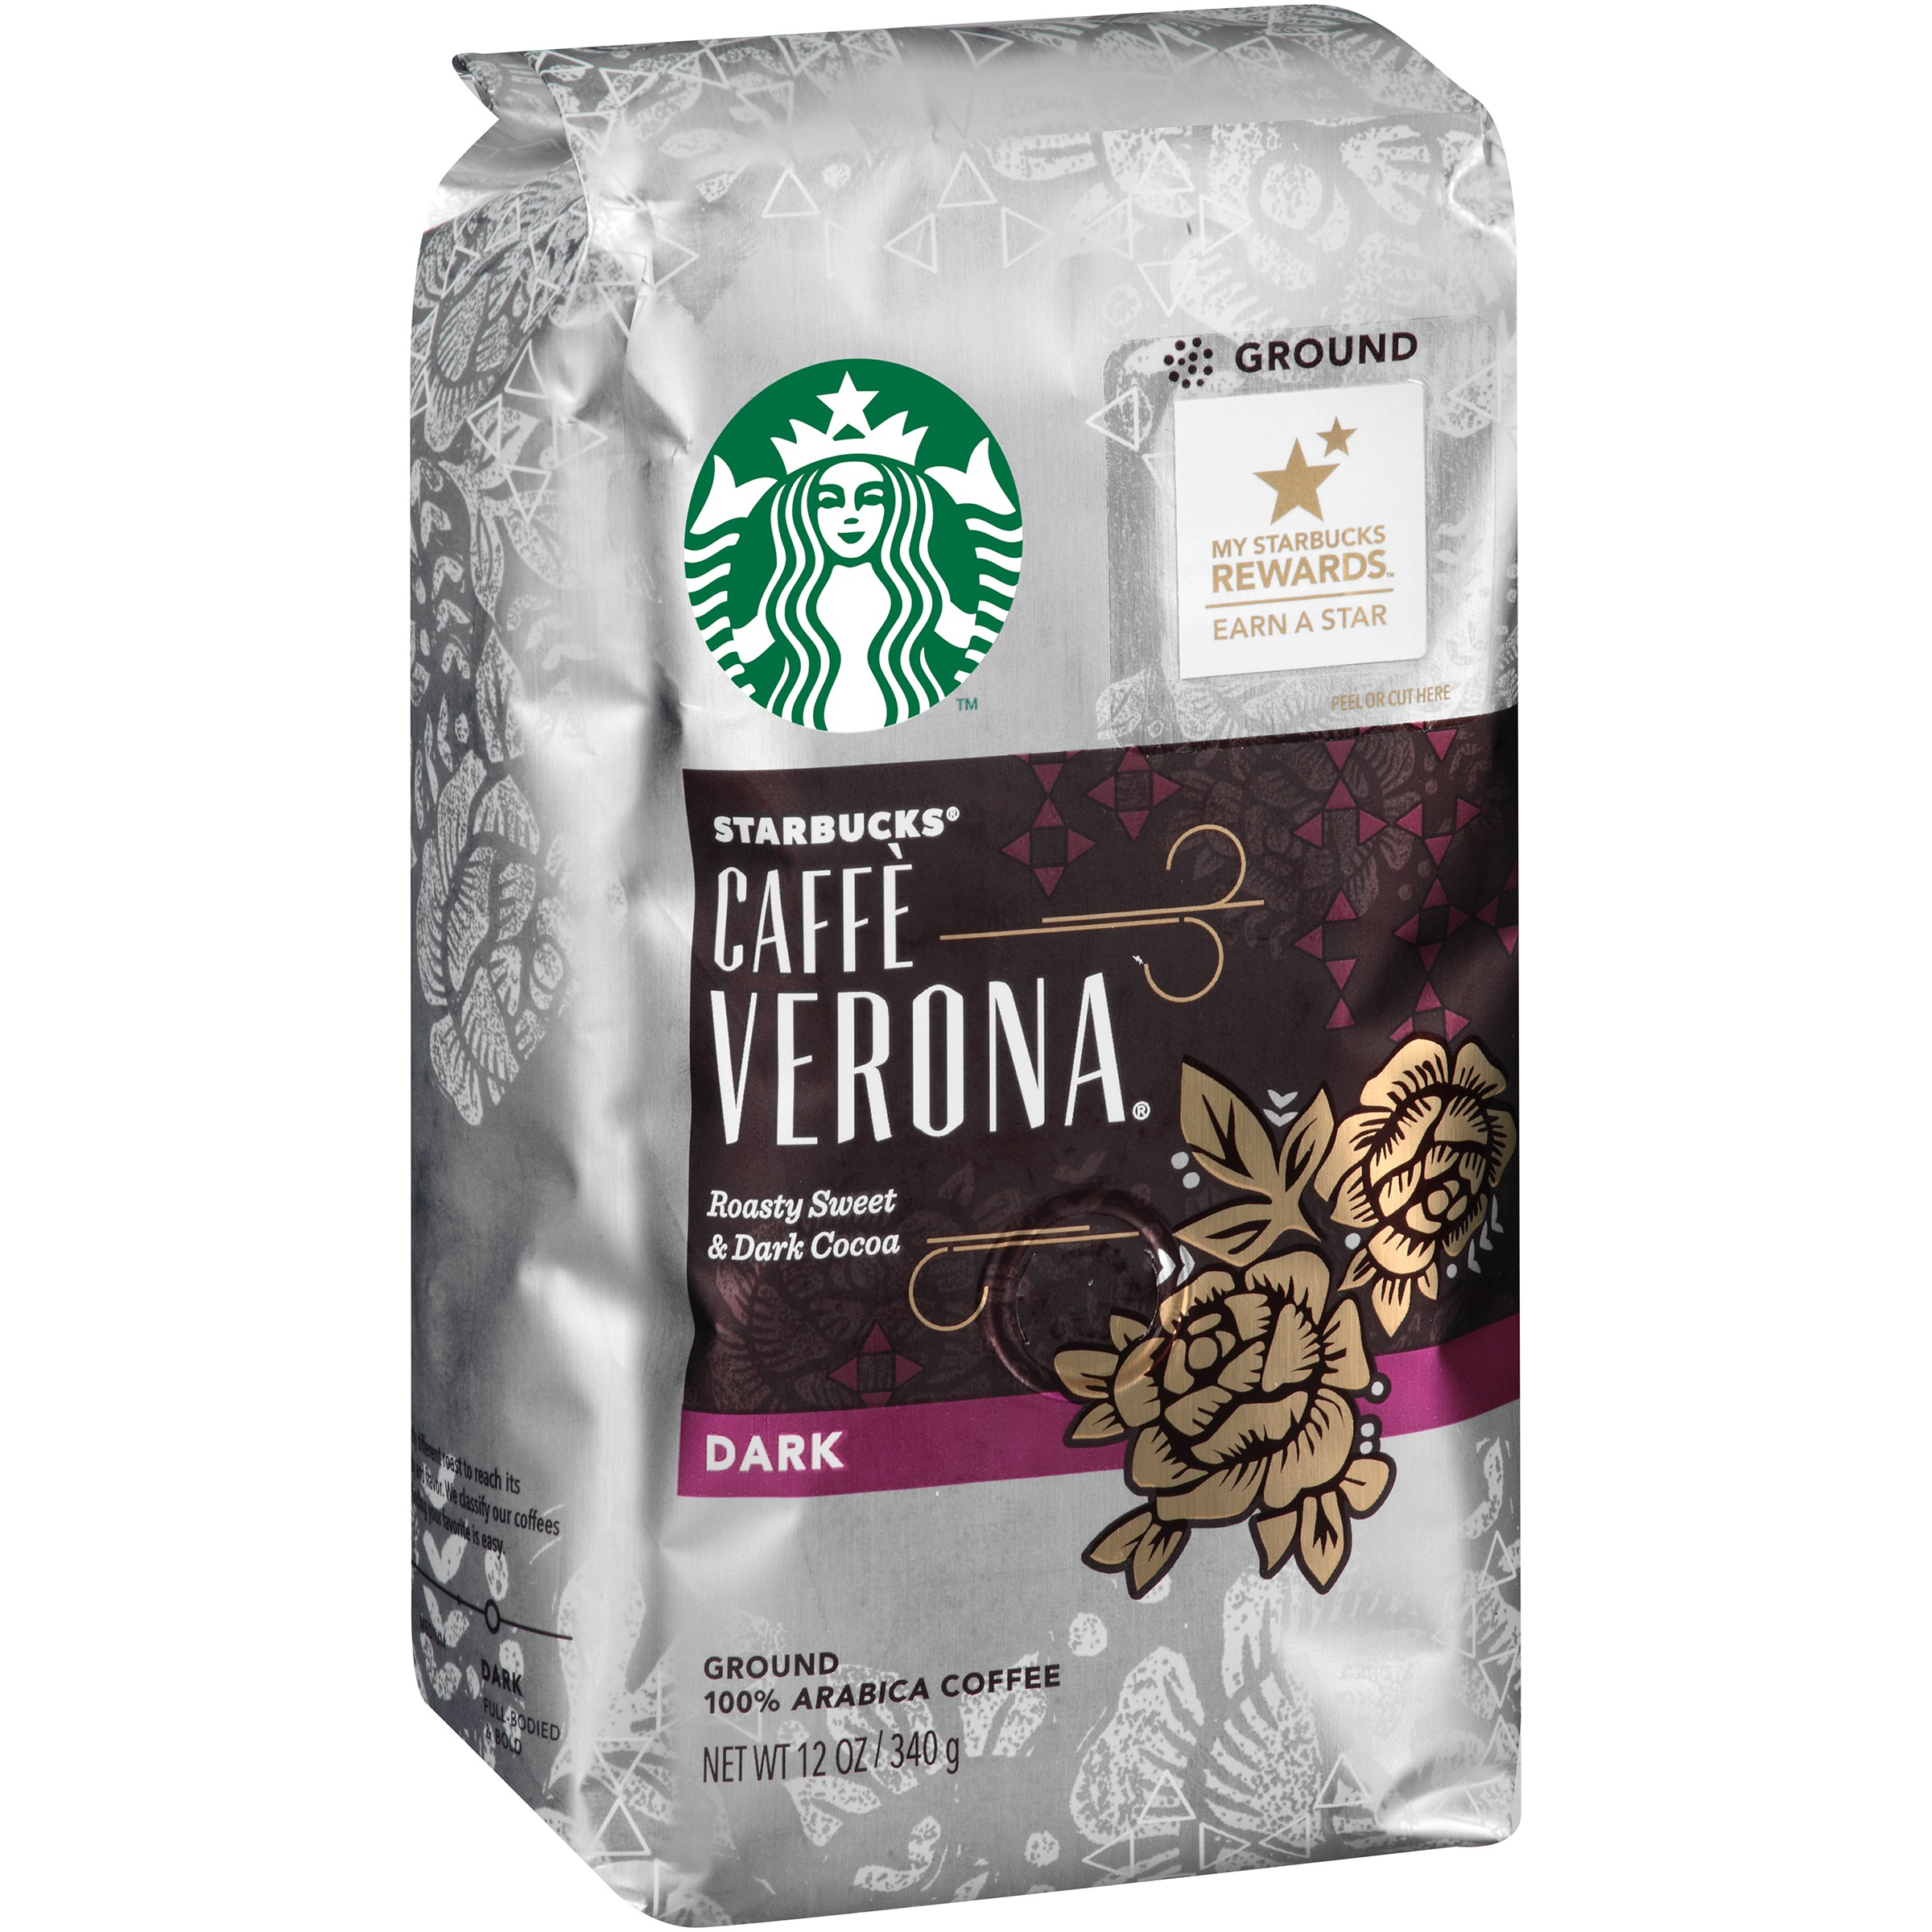 Starbucks 100% Arabica Coffee Caffe Verona Dark Ground, 12.0 OZ by STARBUCKS COFFEE COMPANY